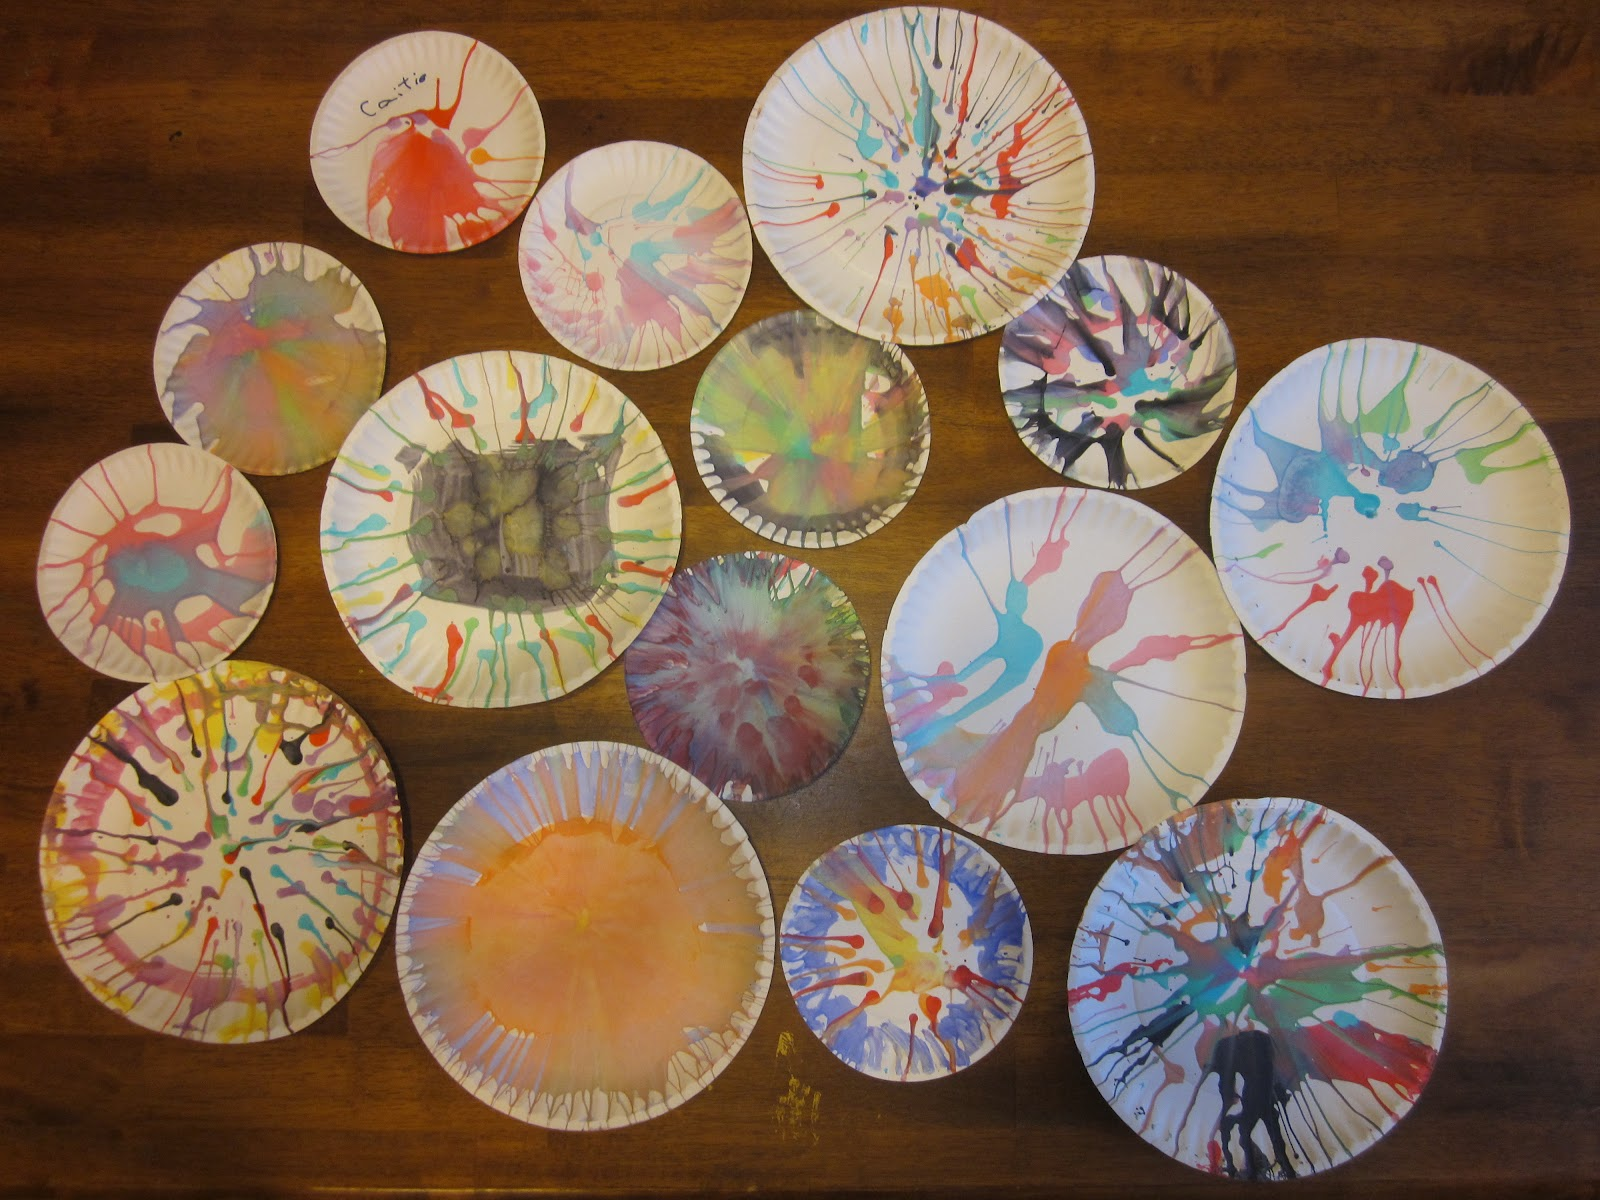 Easy paper crafts for adults the image for Easy paper crafts for adults